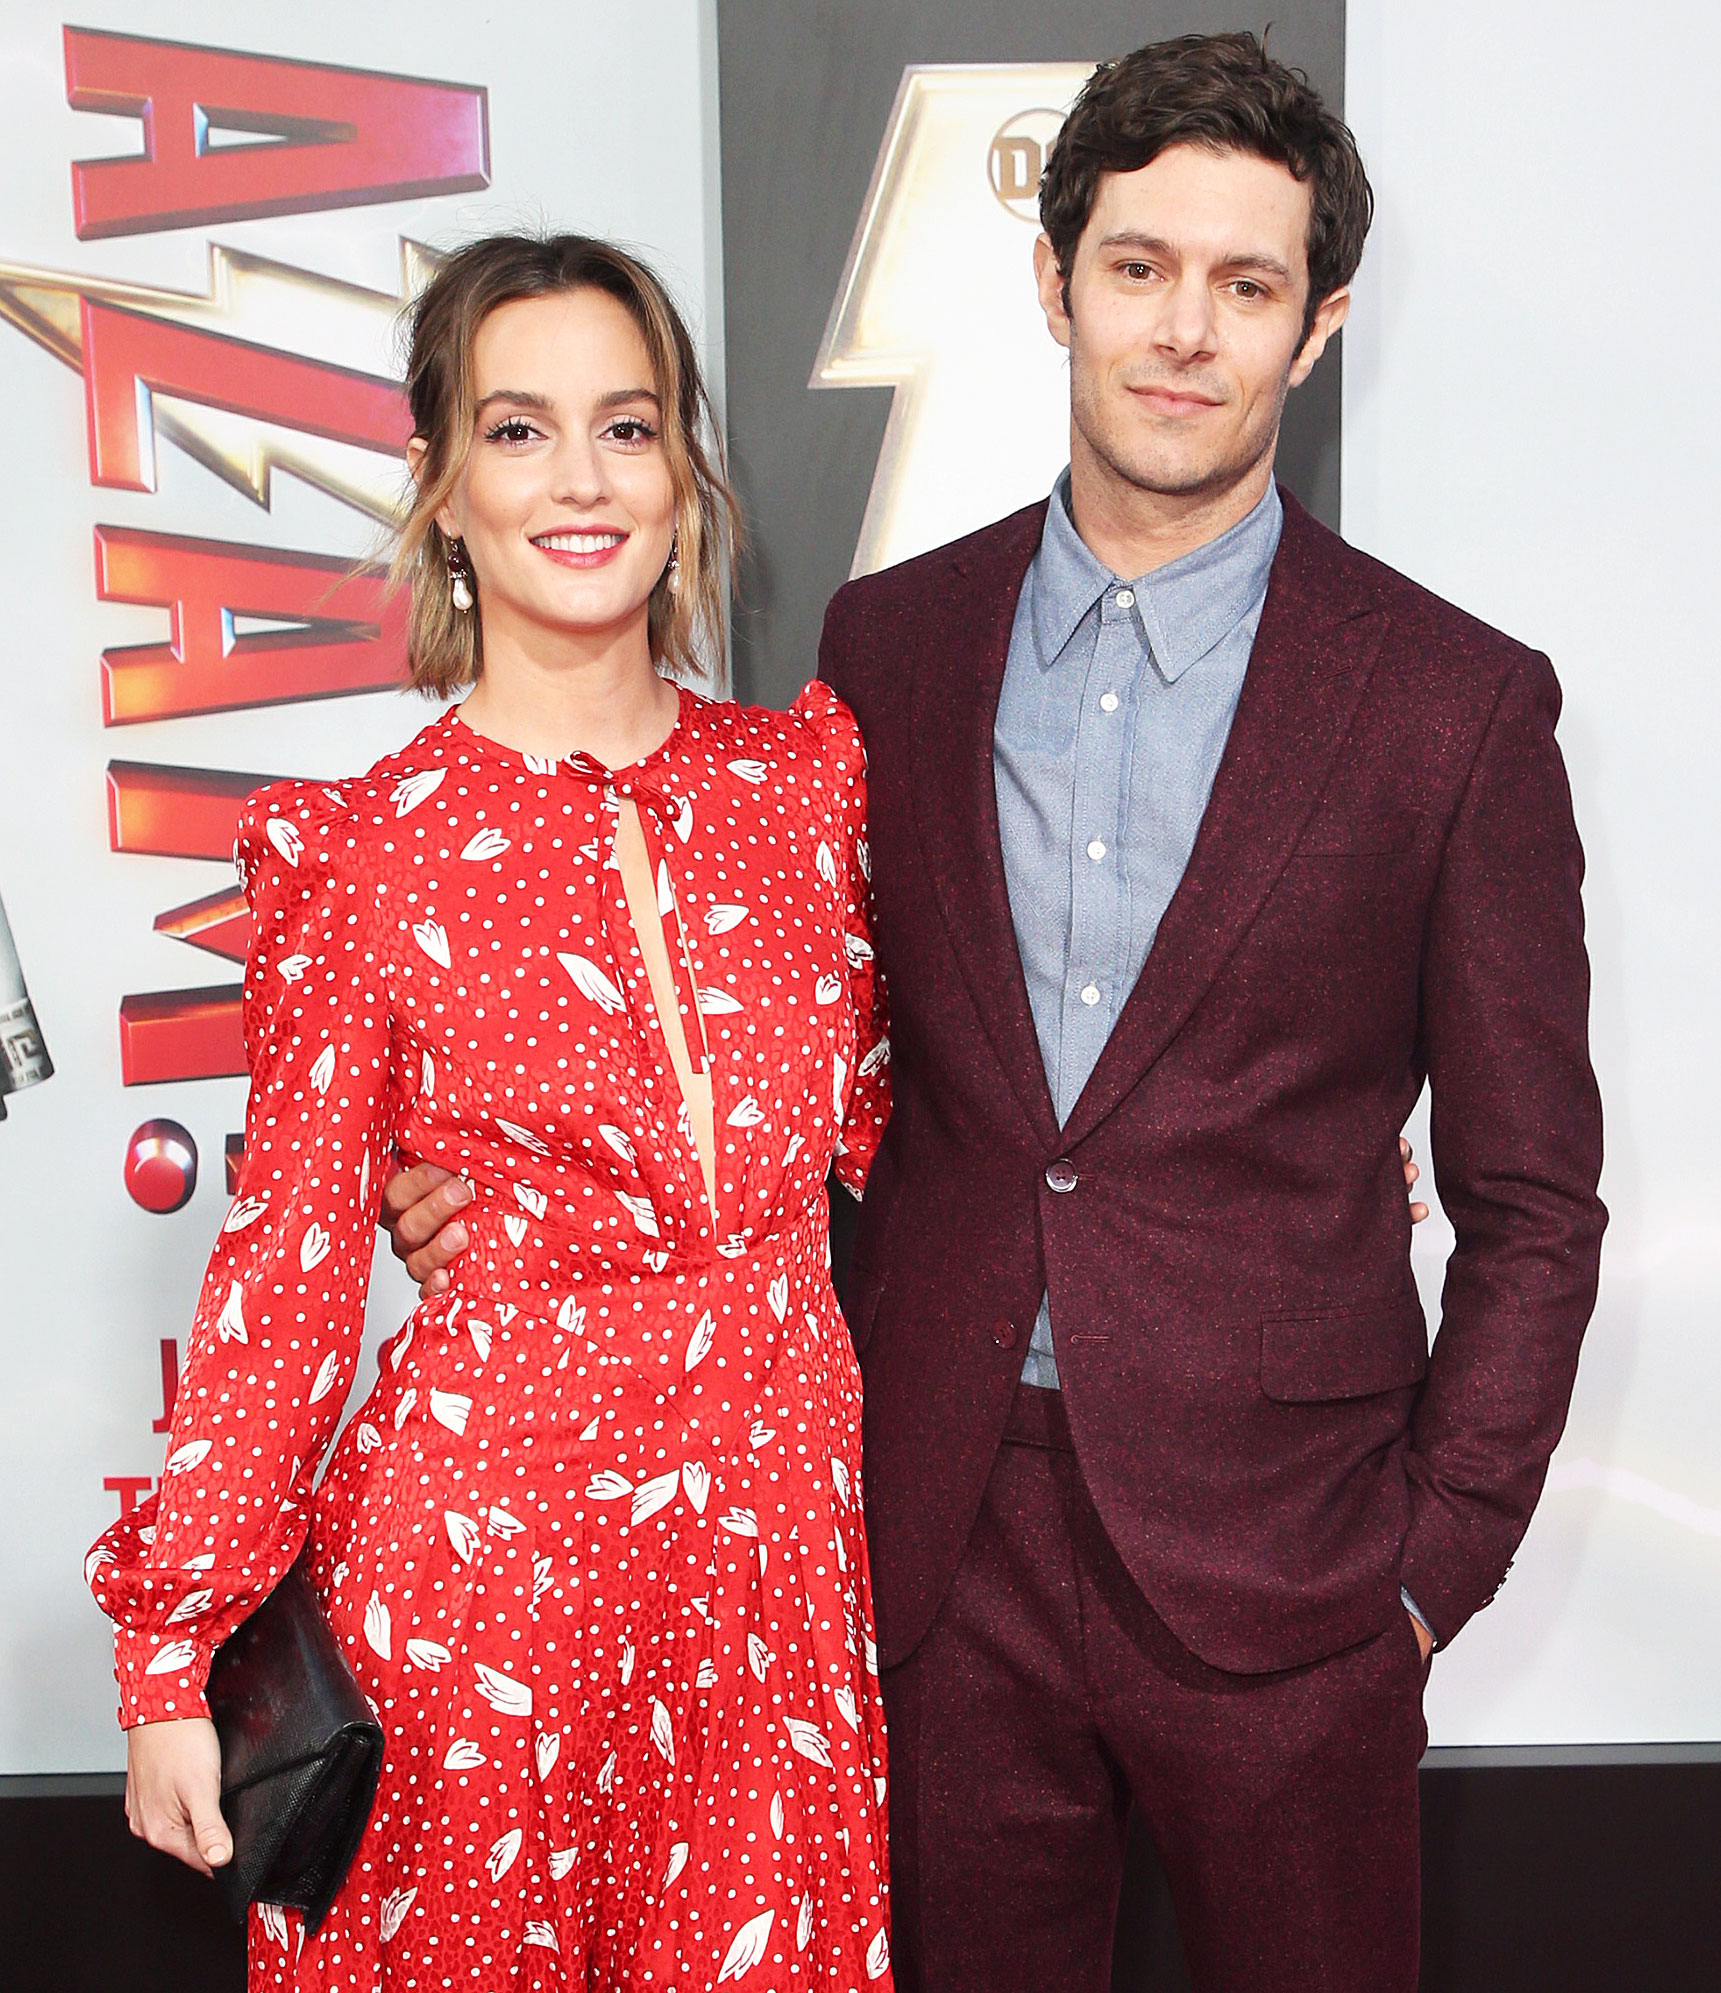 """Leighton Meester Adam Brody Relationship Timeline - Los Angeles, CA – 20190328 Celebrities and cast members arrive for the world premiere of """"Shazam!"""" from Warner Bros. Pictures And New Line Cinema."""